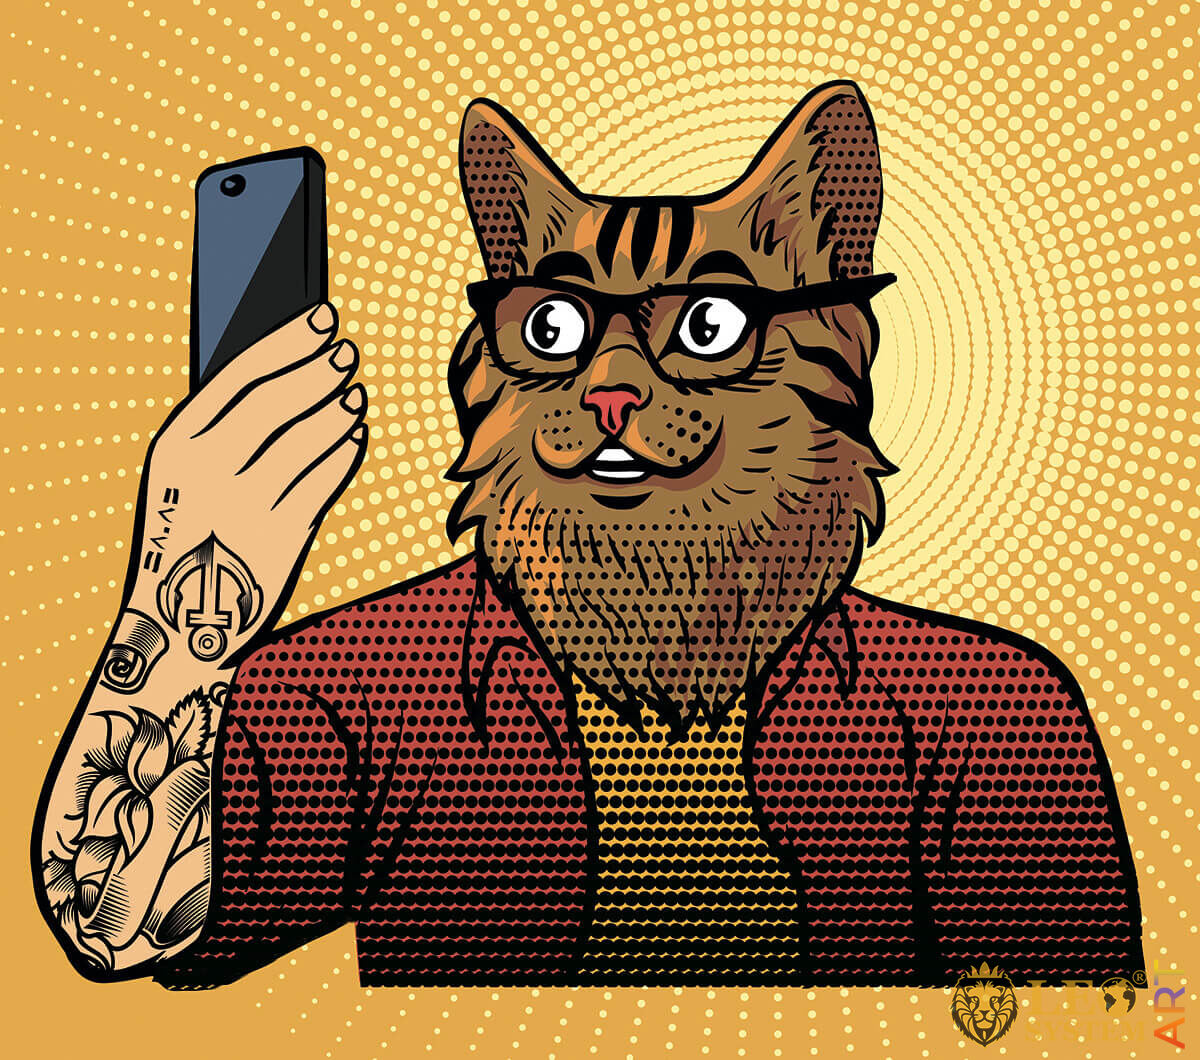 Fantastic cat looks with surprise at the mobile phone